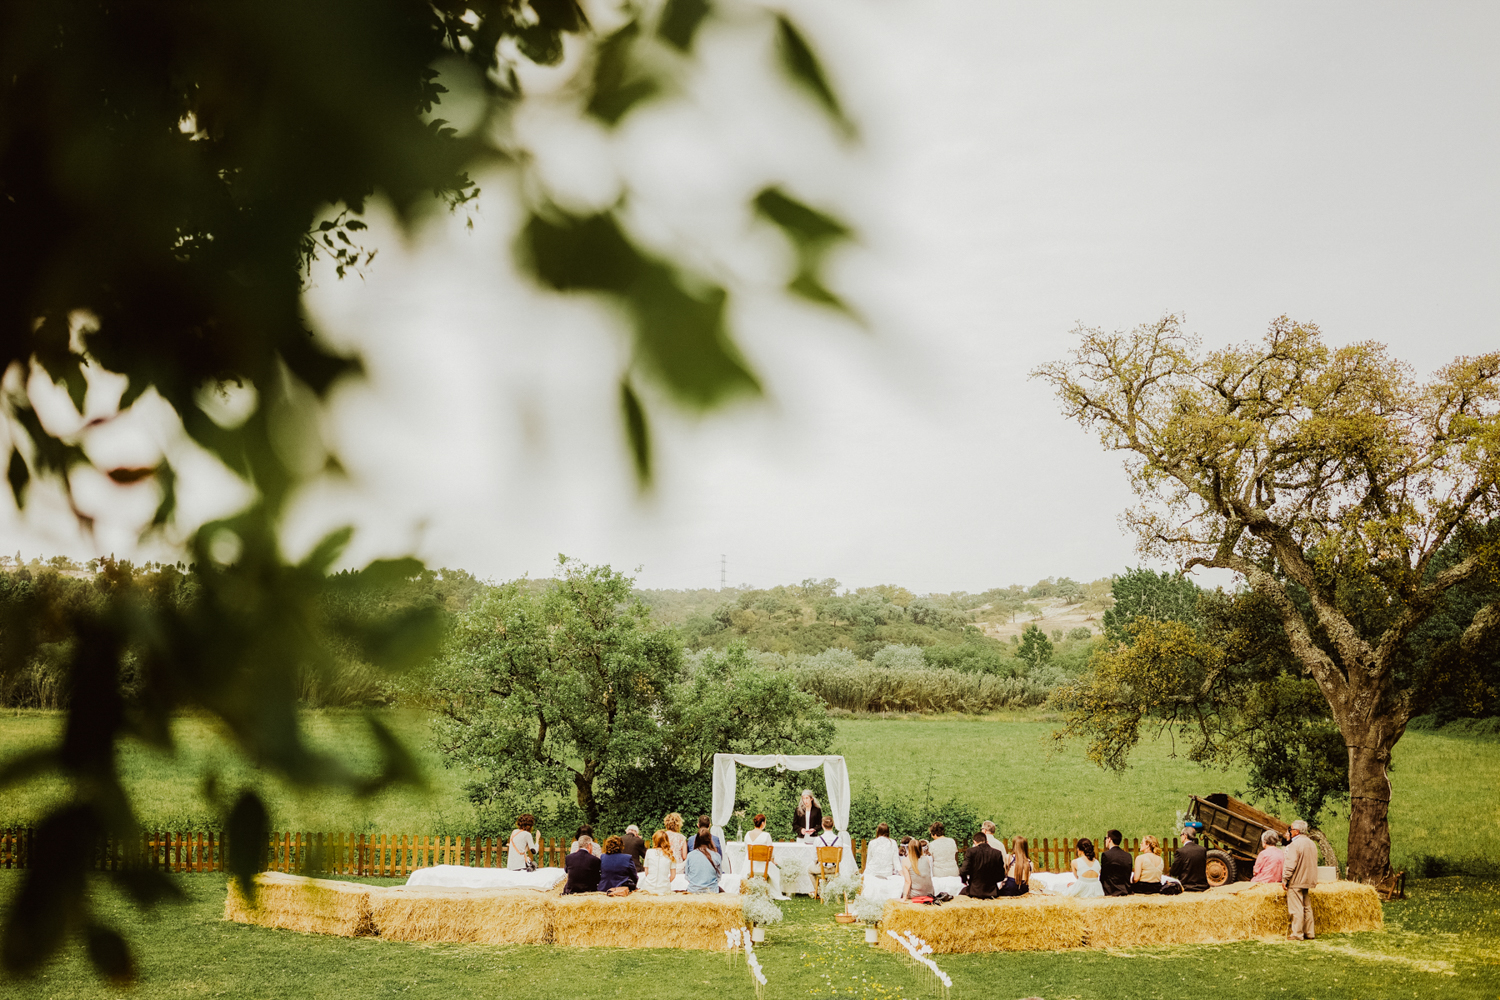 rural wedding portugal alentejo the framers wedding photography - 8